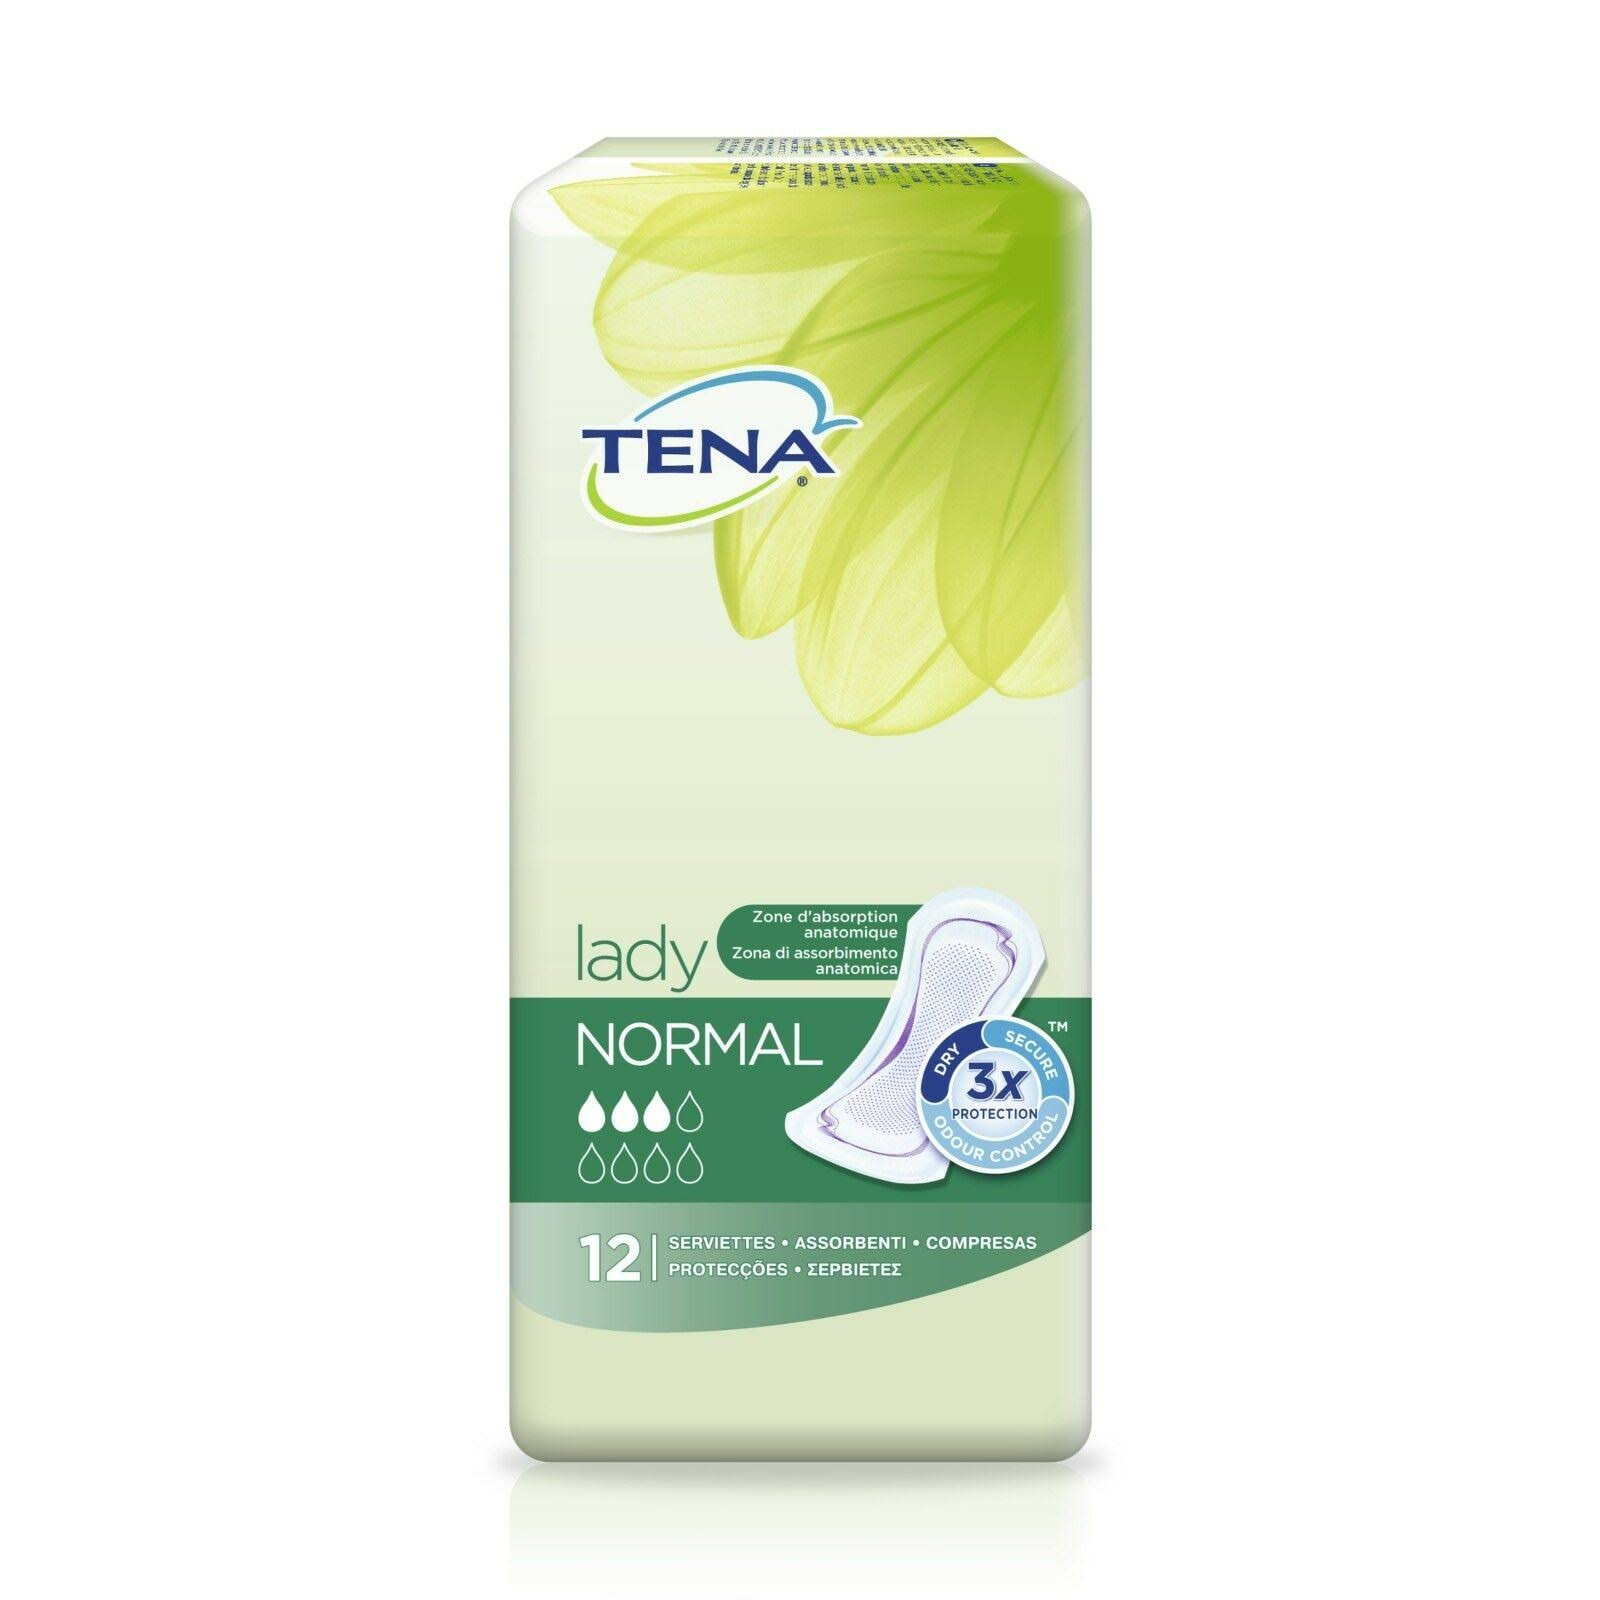 TENA Lady Normal Pads - 12 Pads